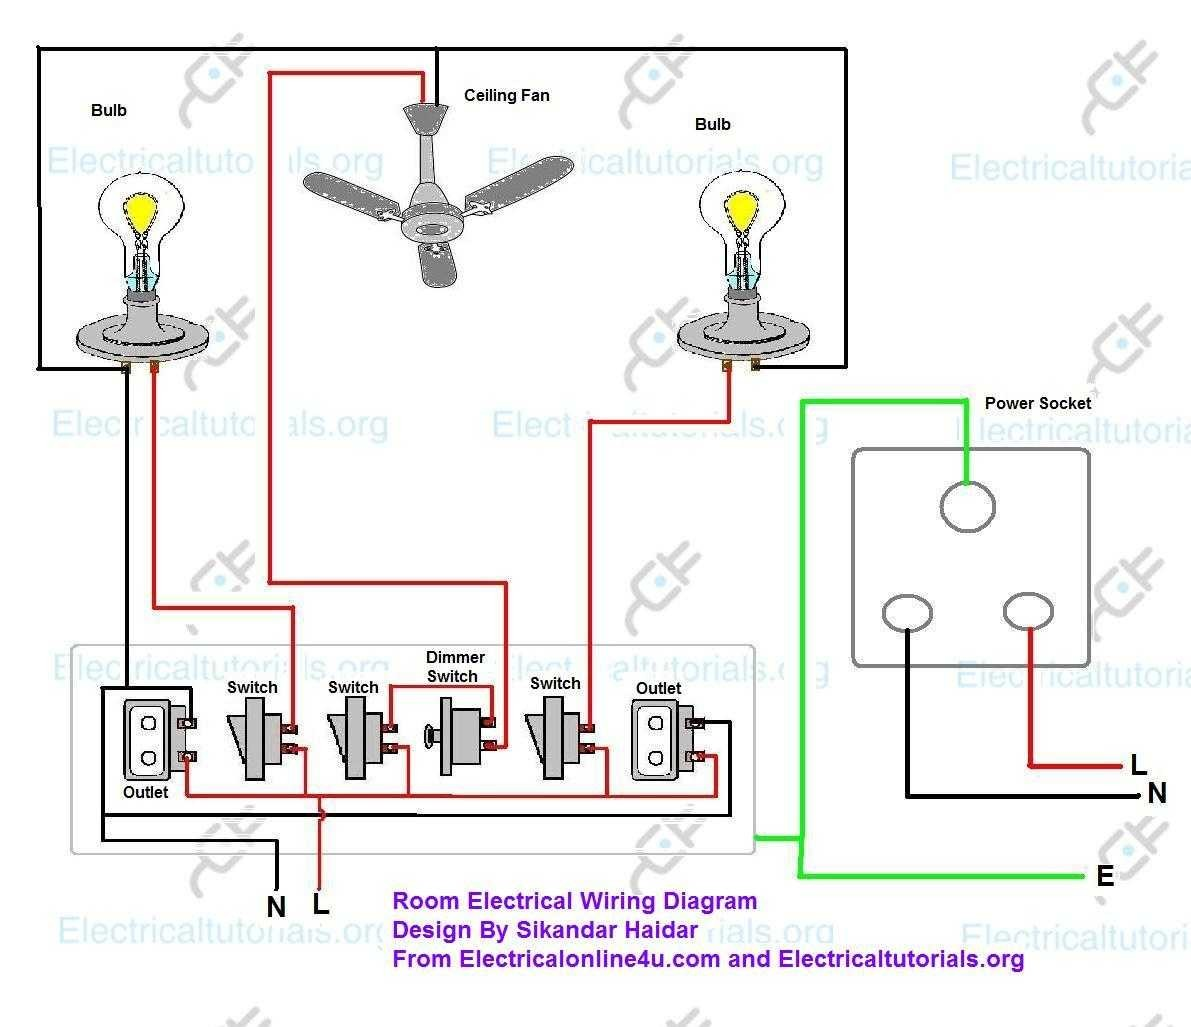 housing electrical wiring diagram new wiring diagram image rh mainetreasurechest com house electrical wiring tutorial pdf house electrical wiring tutorial